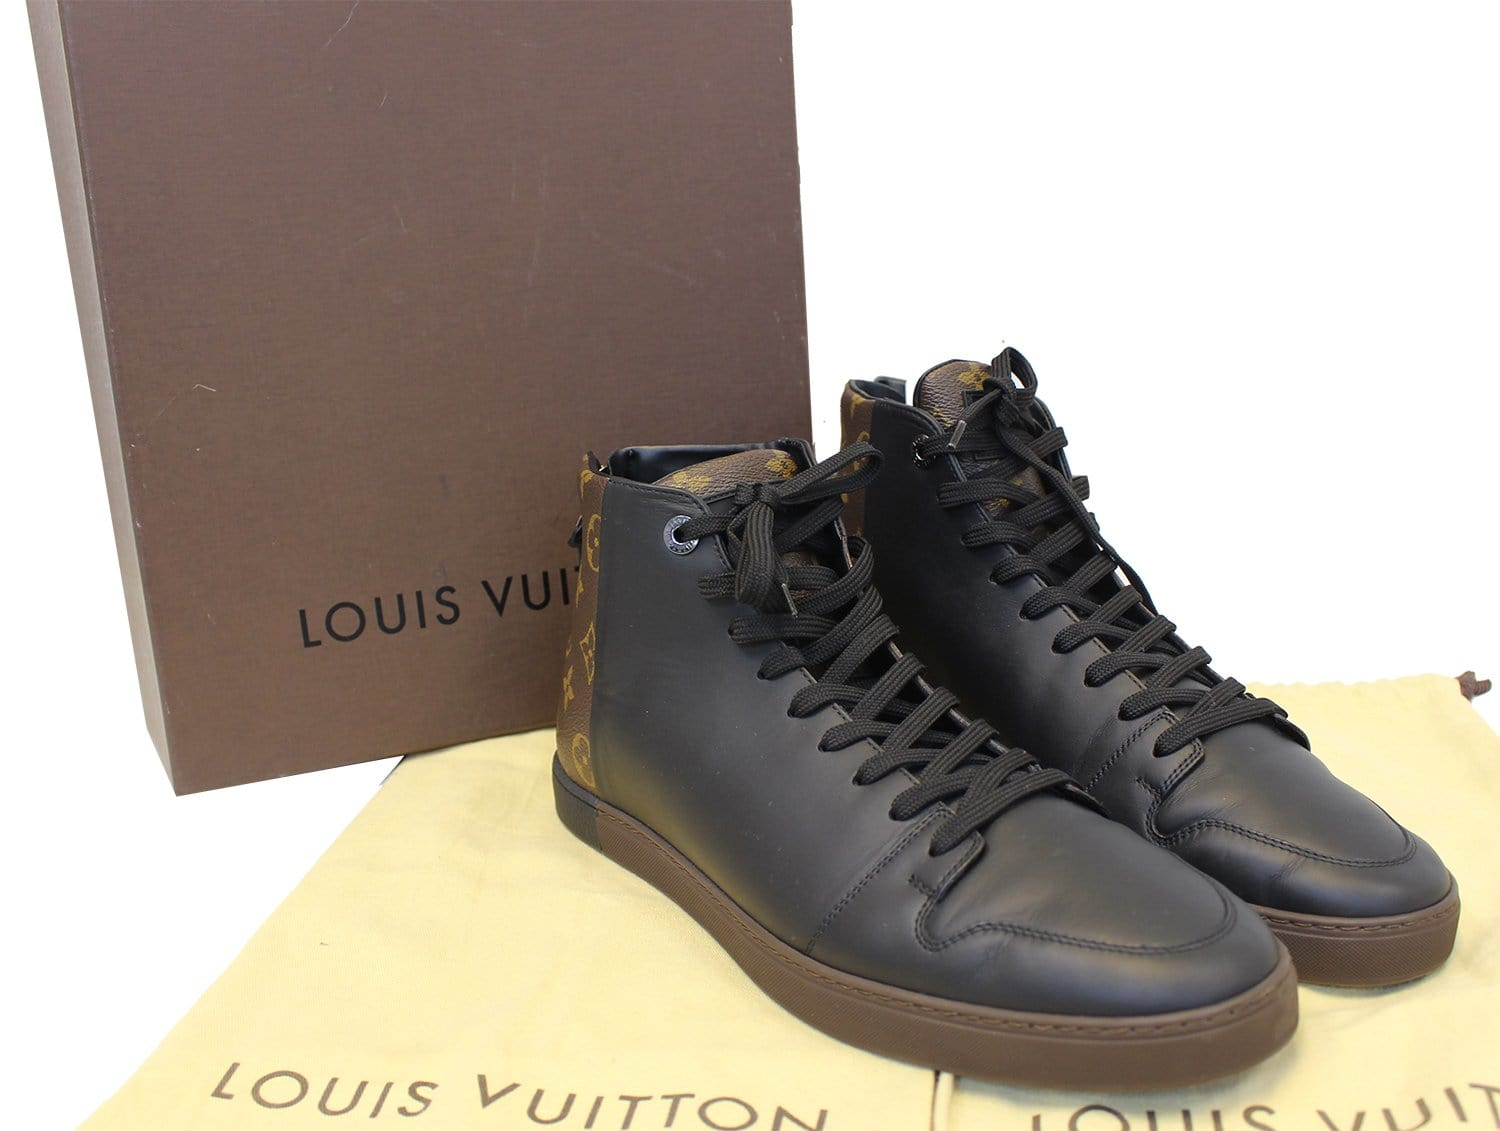 2384679b5a76 LOUIS VUITTON Monogram Line up Sneakers Size 10